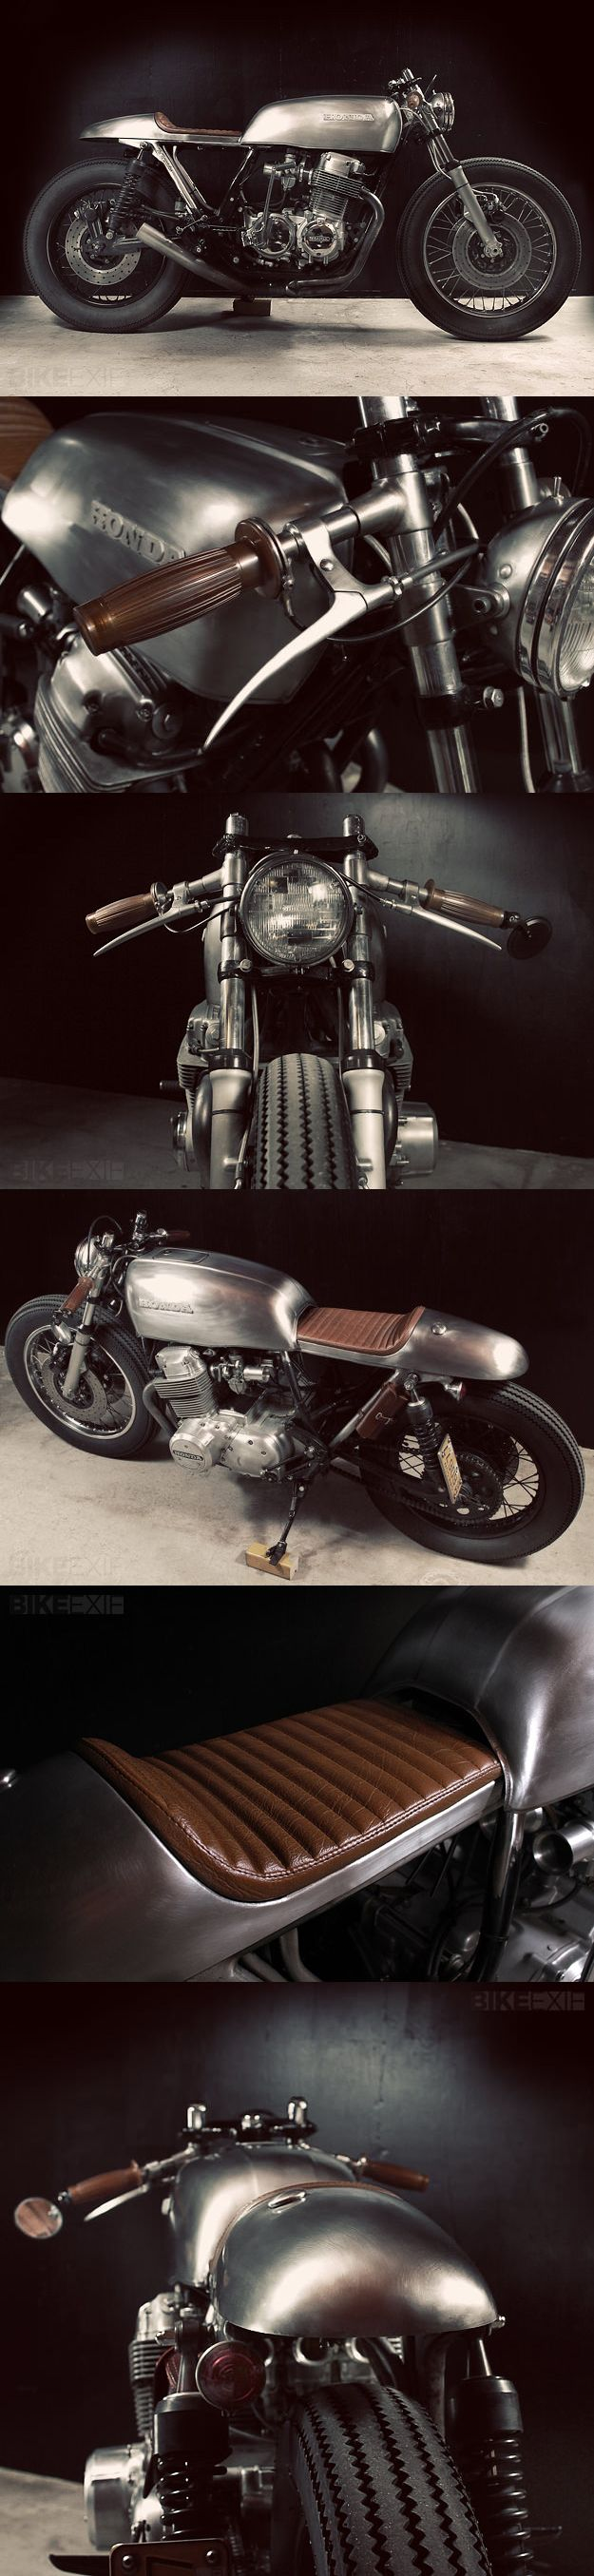 CROWE/TARANTULAS CB750. This has to be one of the best CB interpretations I've come across. Fantastic concept and workmanship.